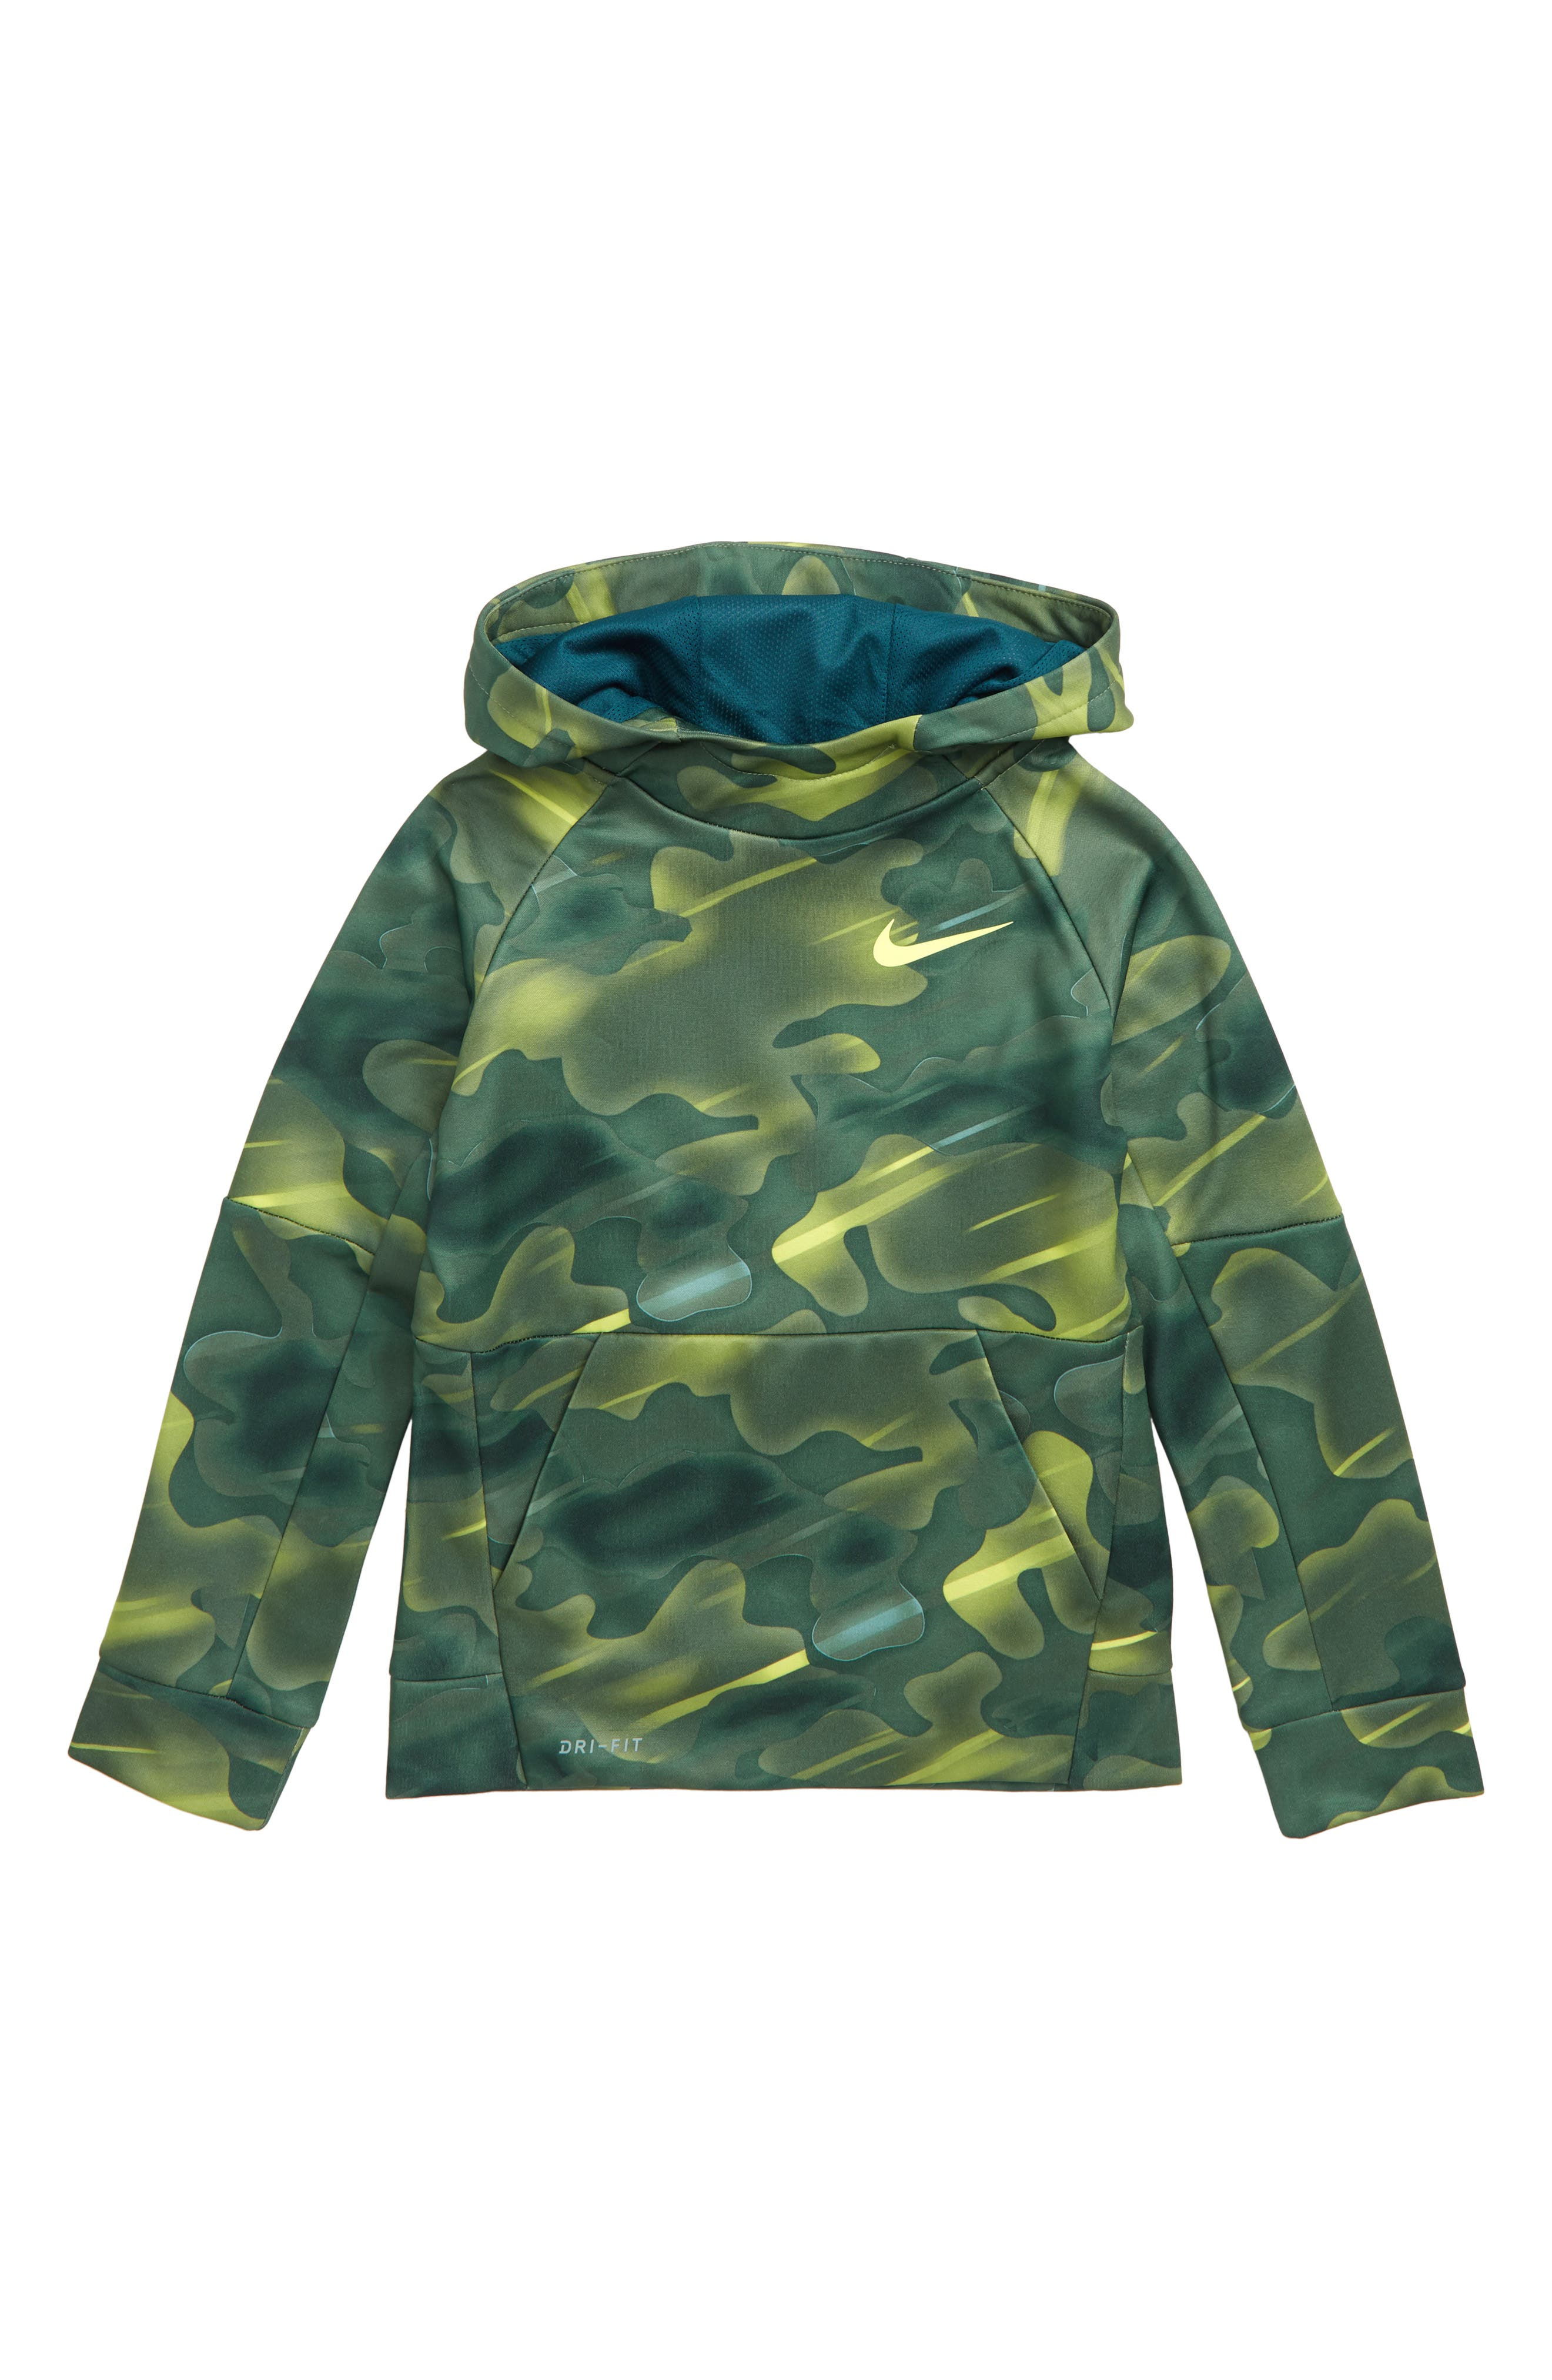 Therma Dry Hoodie,                         Main,                         color, BLUE FORCE